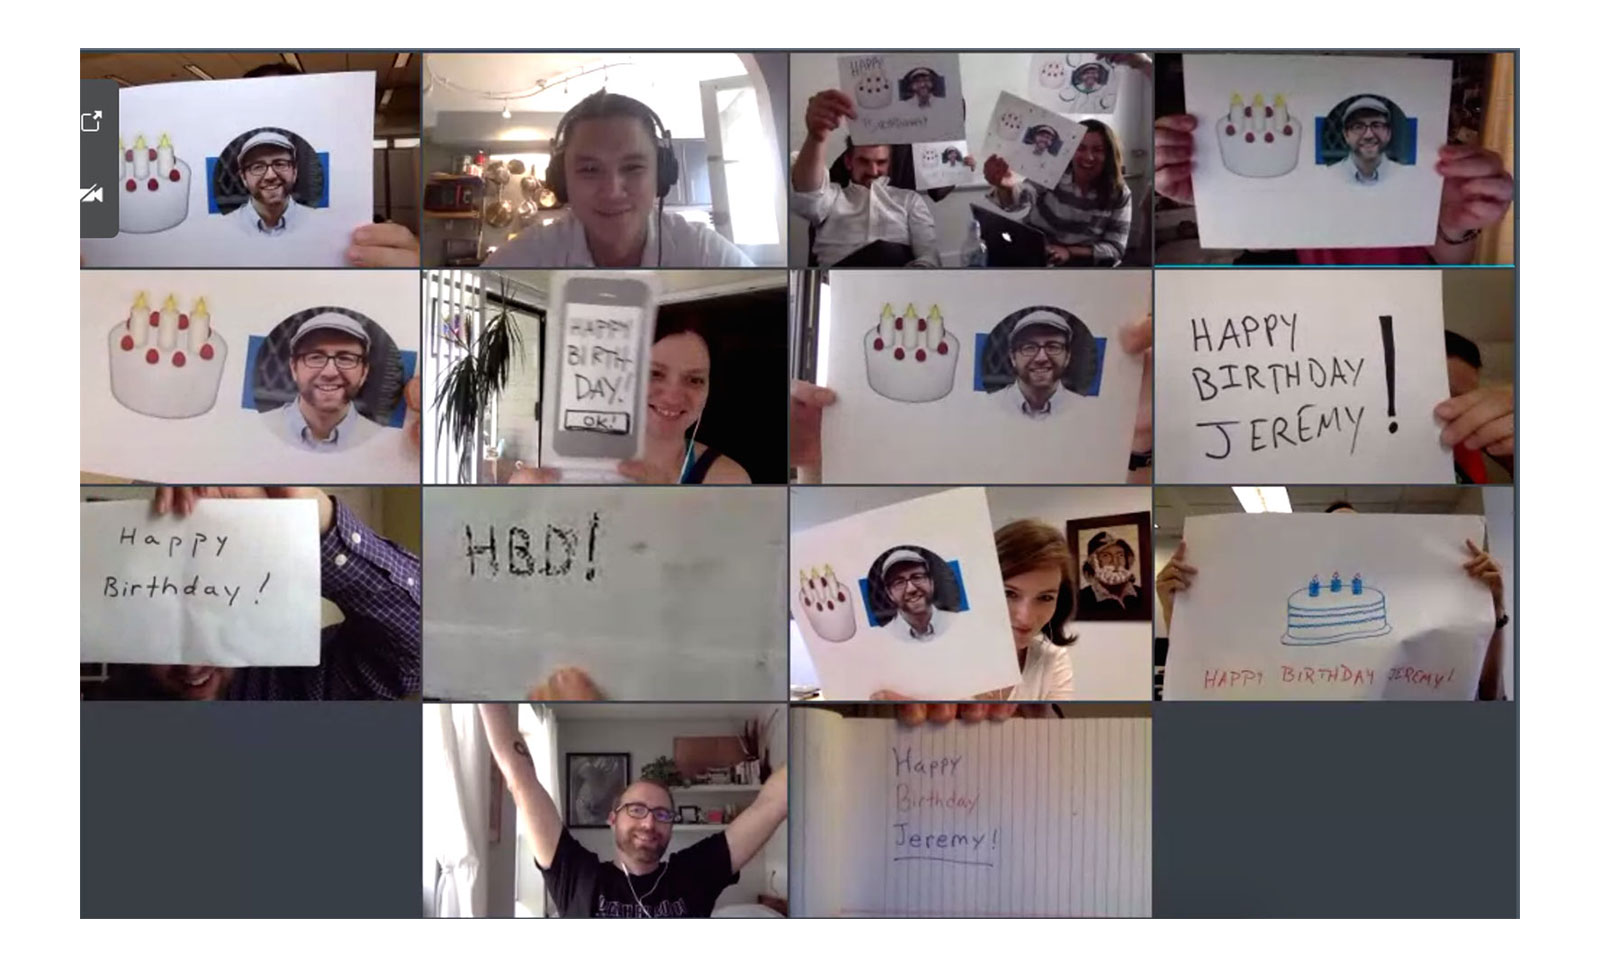 A grid of 18F team members using signs to wish their colleague a happy birthday.